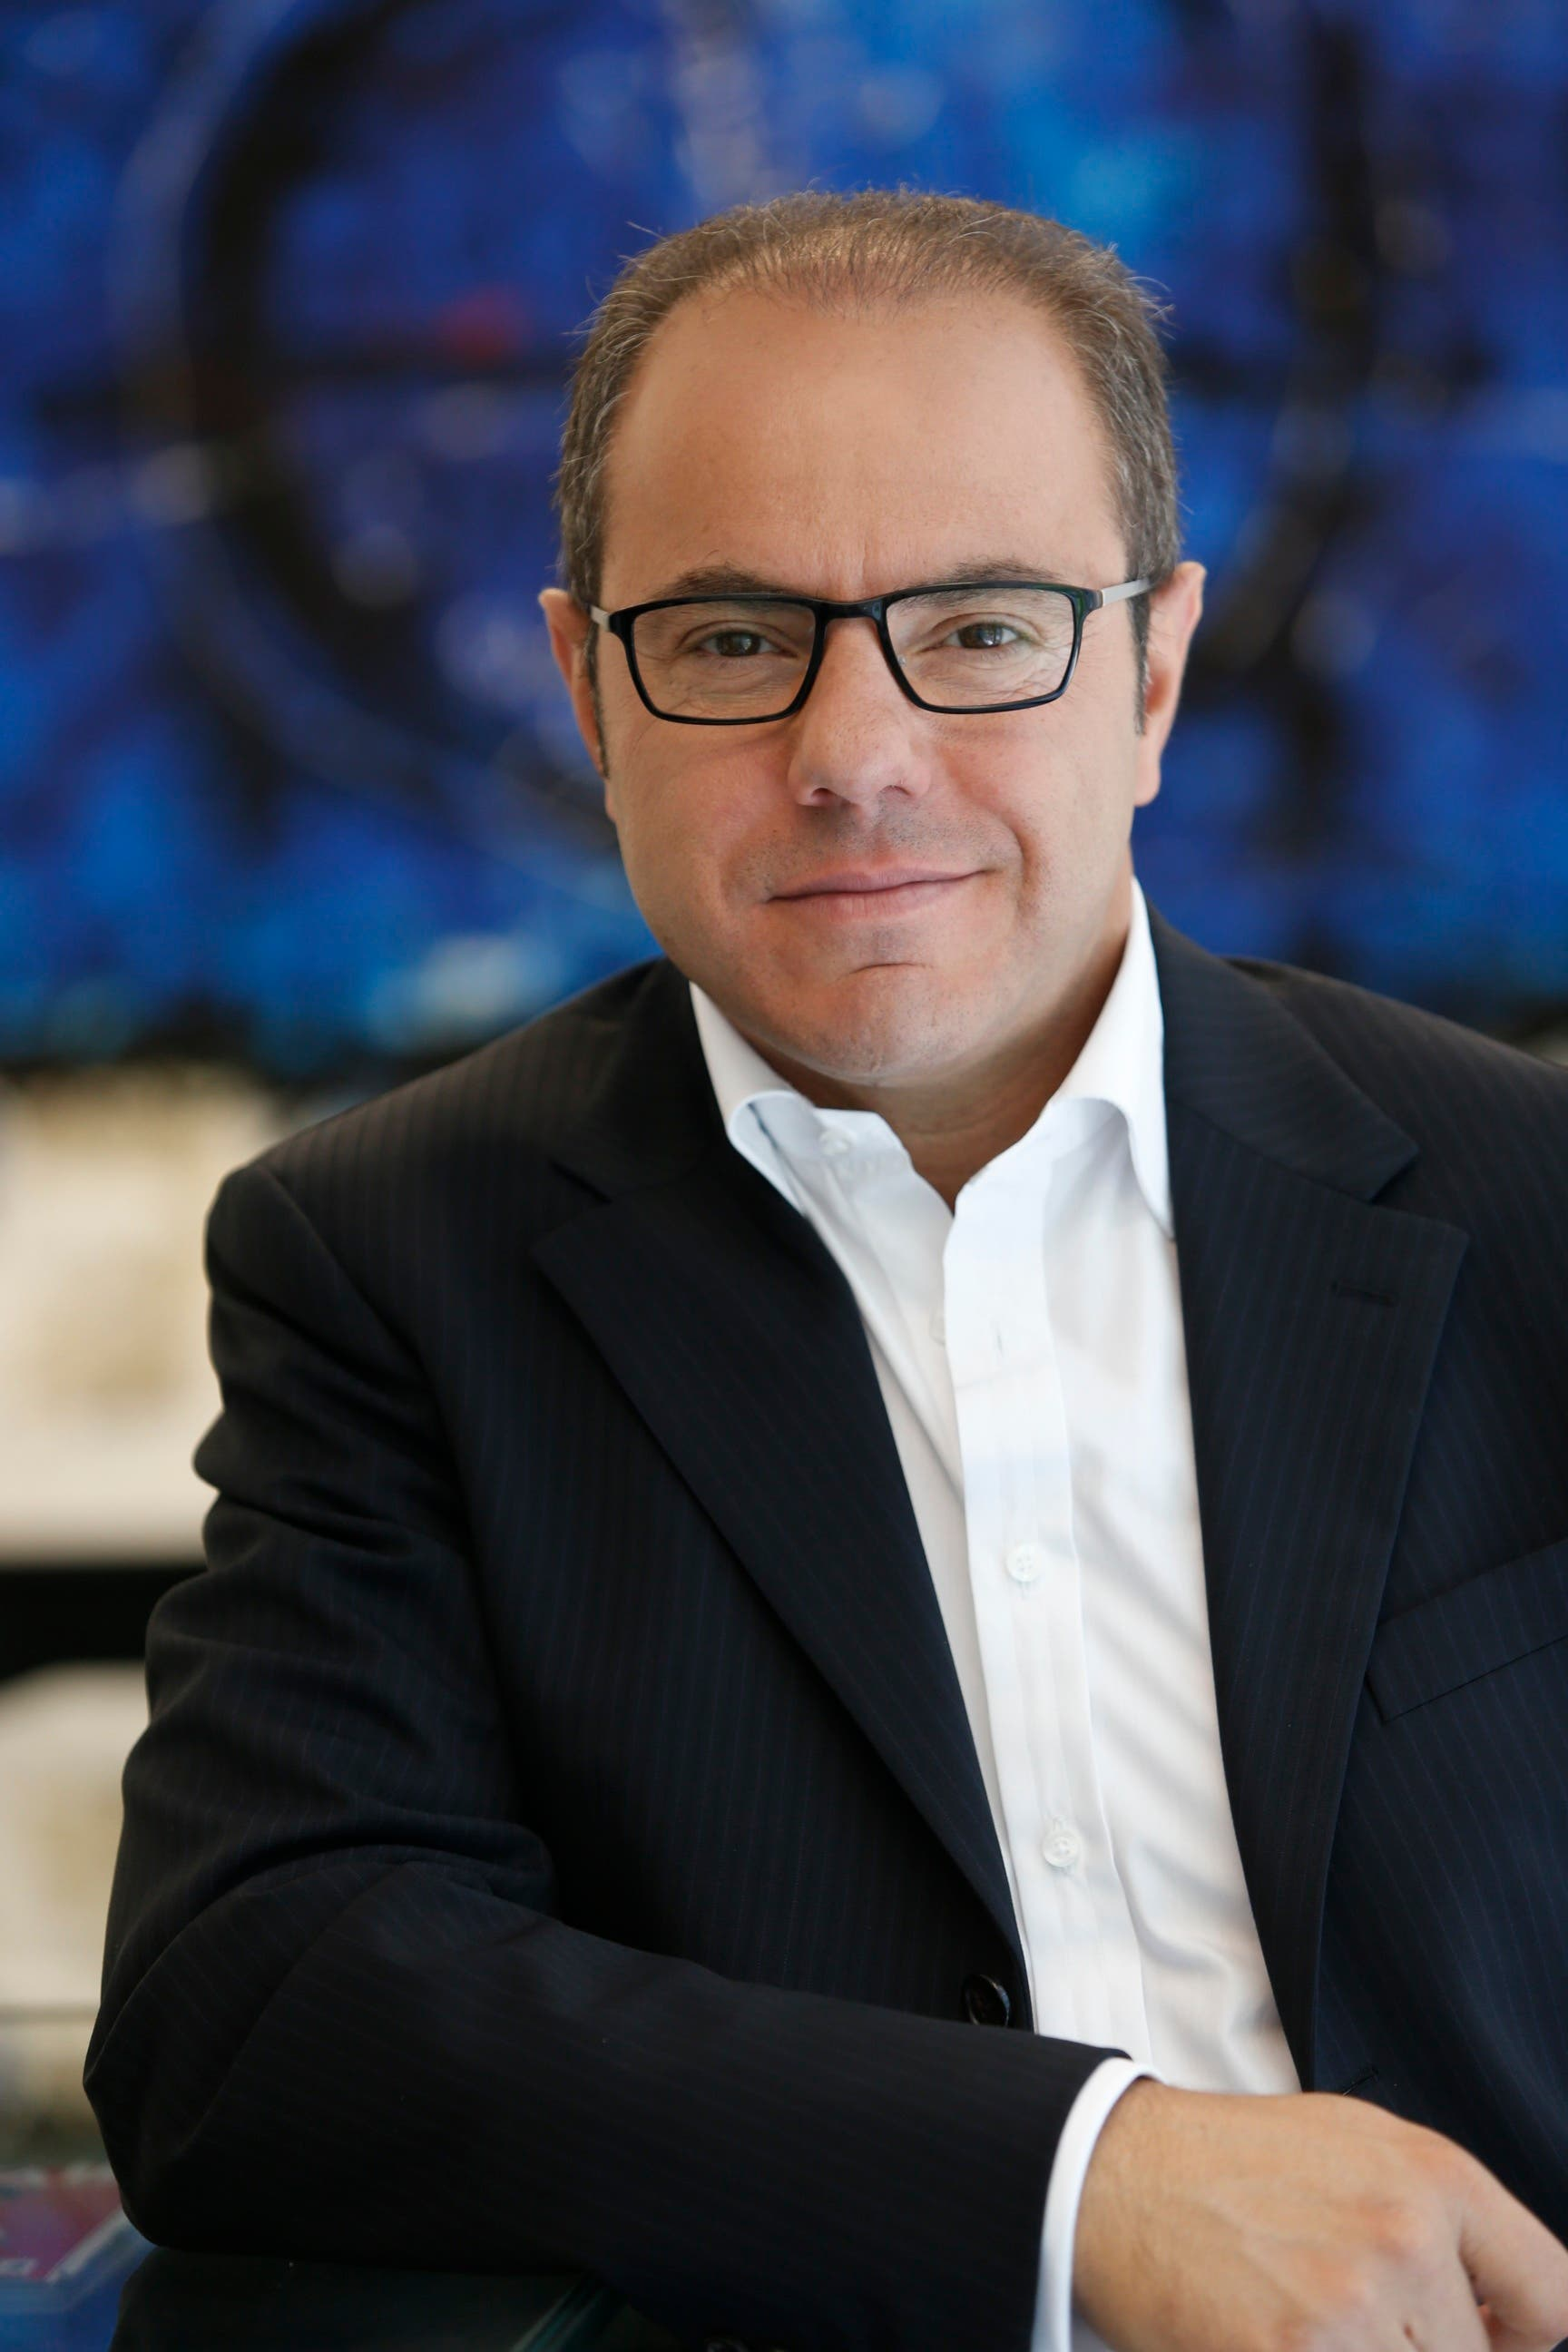 Elie Khouri, chief executive of Omnicom Media Group in the Middle East and North Africa